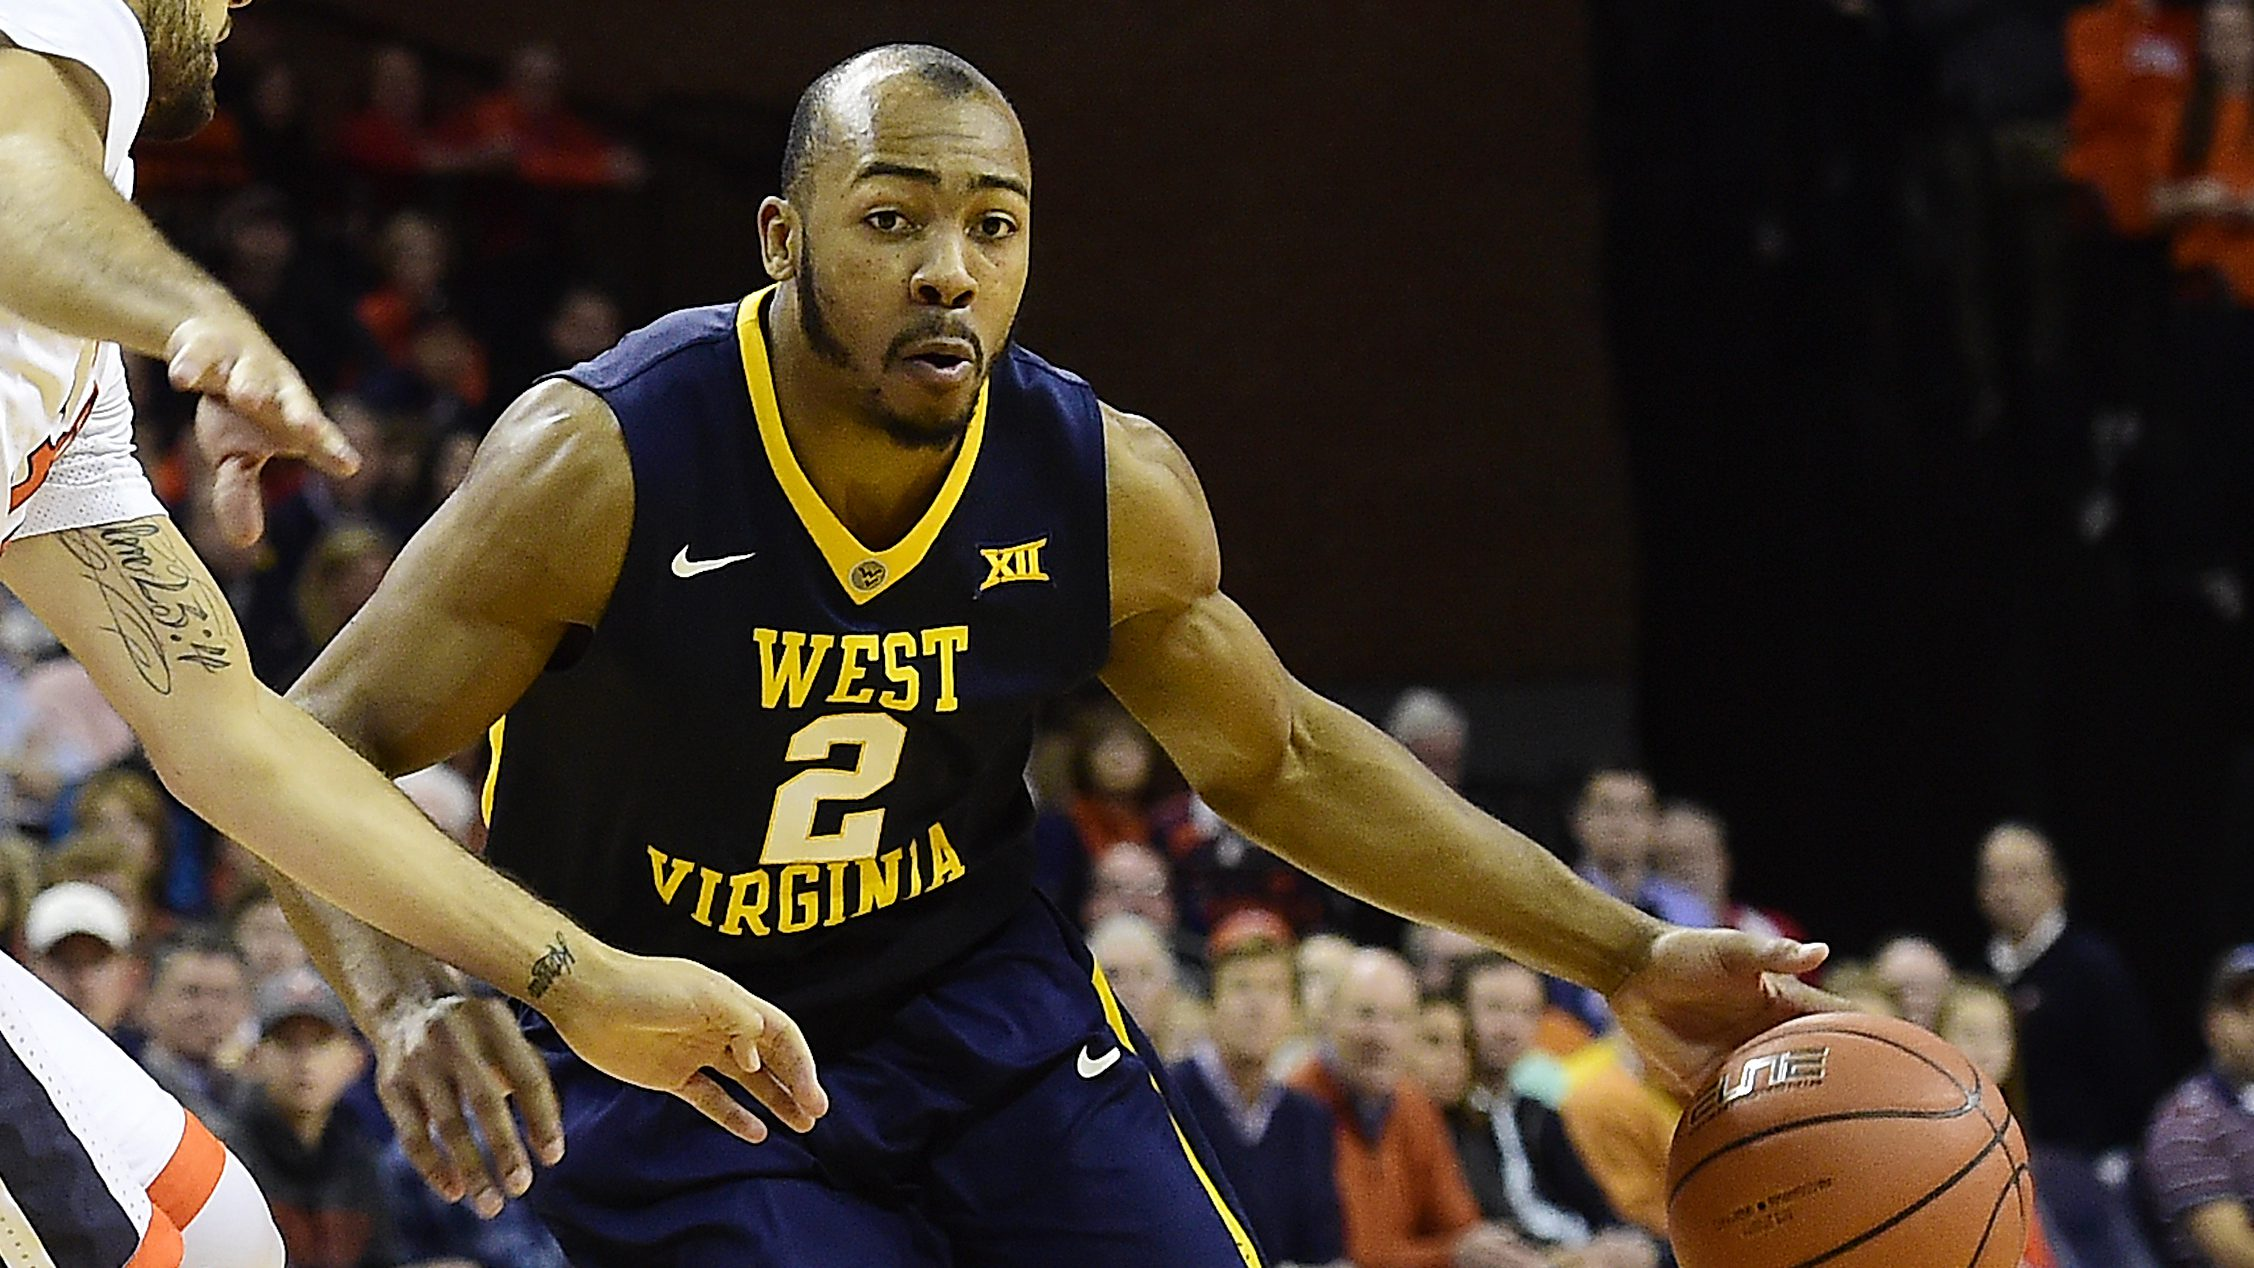 CHARLOTTESVILLE, VA - DECEMBER 03: Jevon Carter #2 of the West Virginia Mountaineers dribbles the ball against London Perrantes #32 of the Virginia Cavaliers in the first half during a game at John Paul Jones Arena on December 3, 2016 in Charlottesville, Virginia. (Photo by Patrick McDermott/Getty Images)